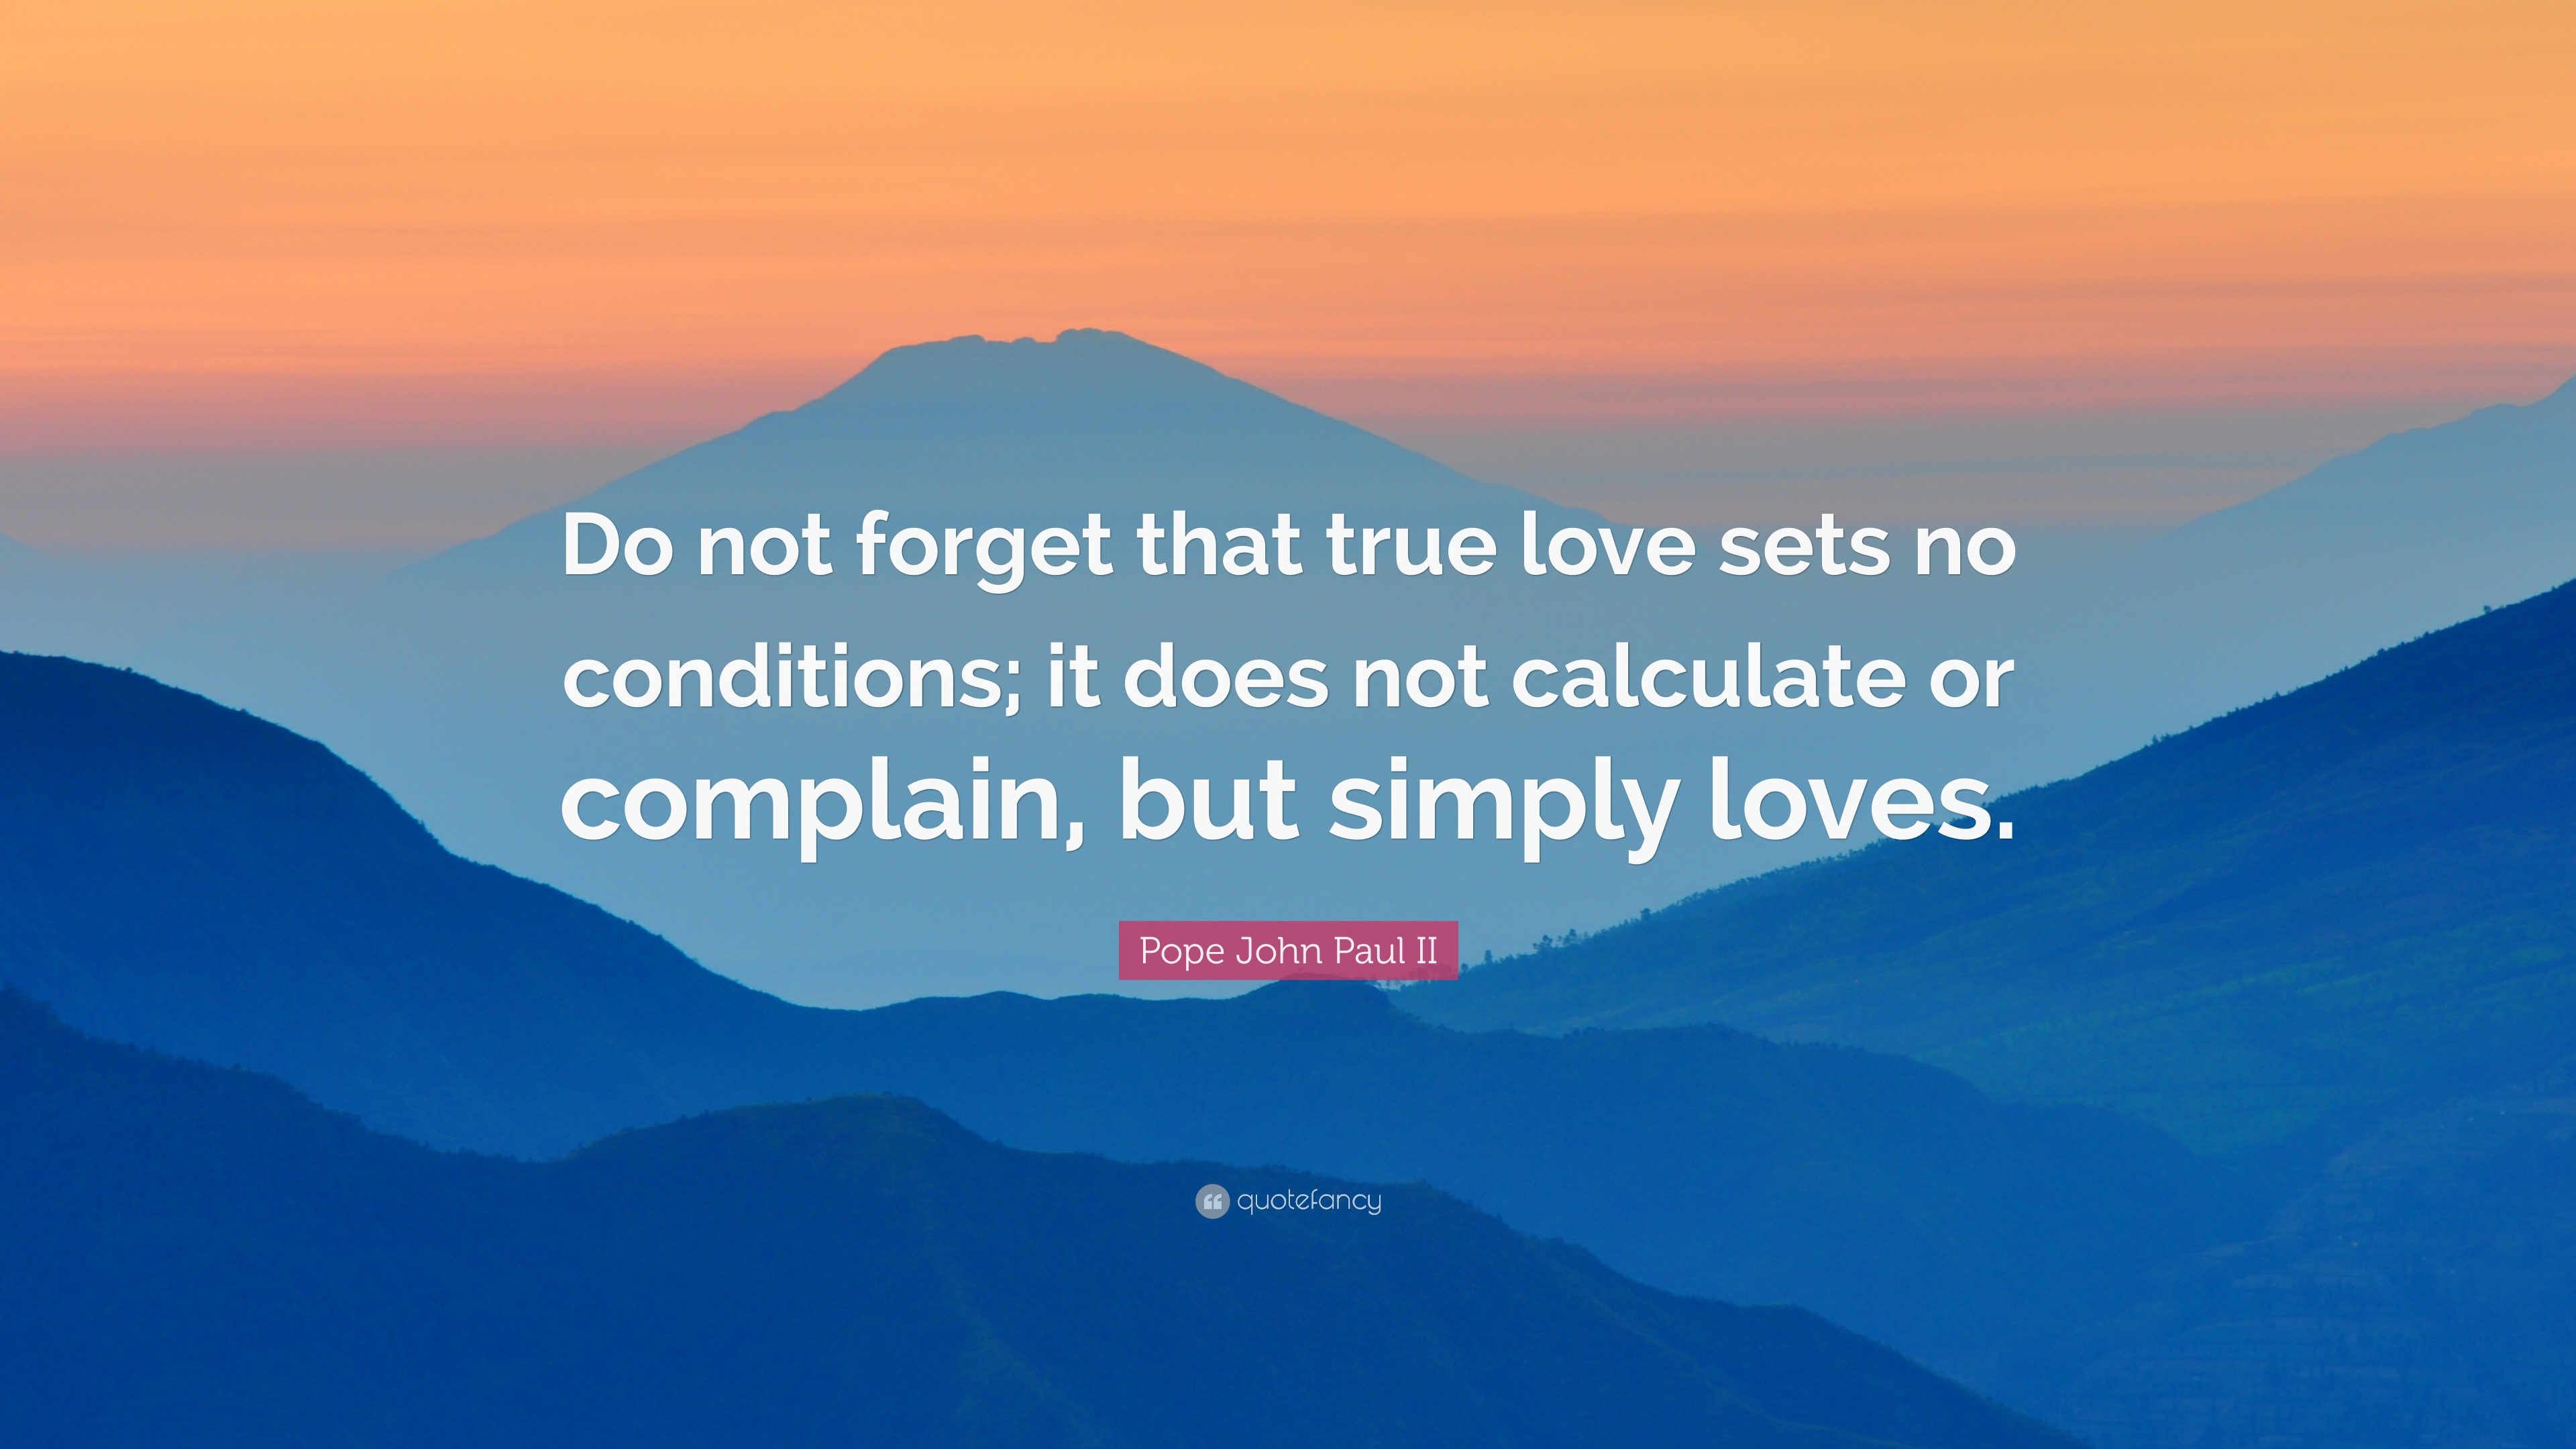 Pope John Paul II Quote: U201cDo Not Forget That True Love Sets No Conditions